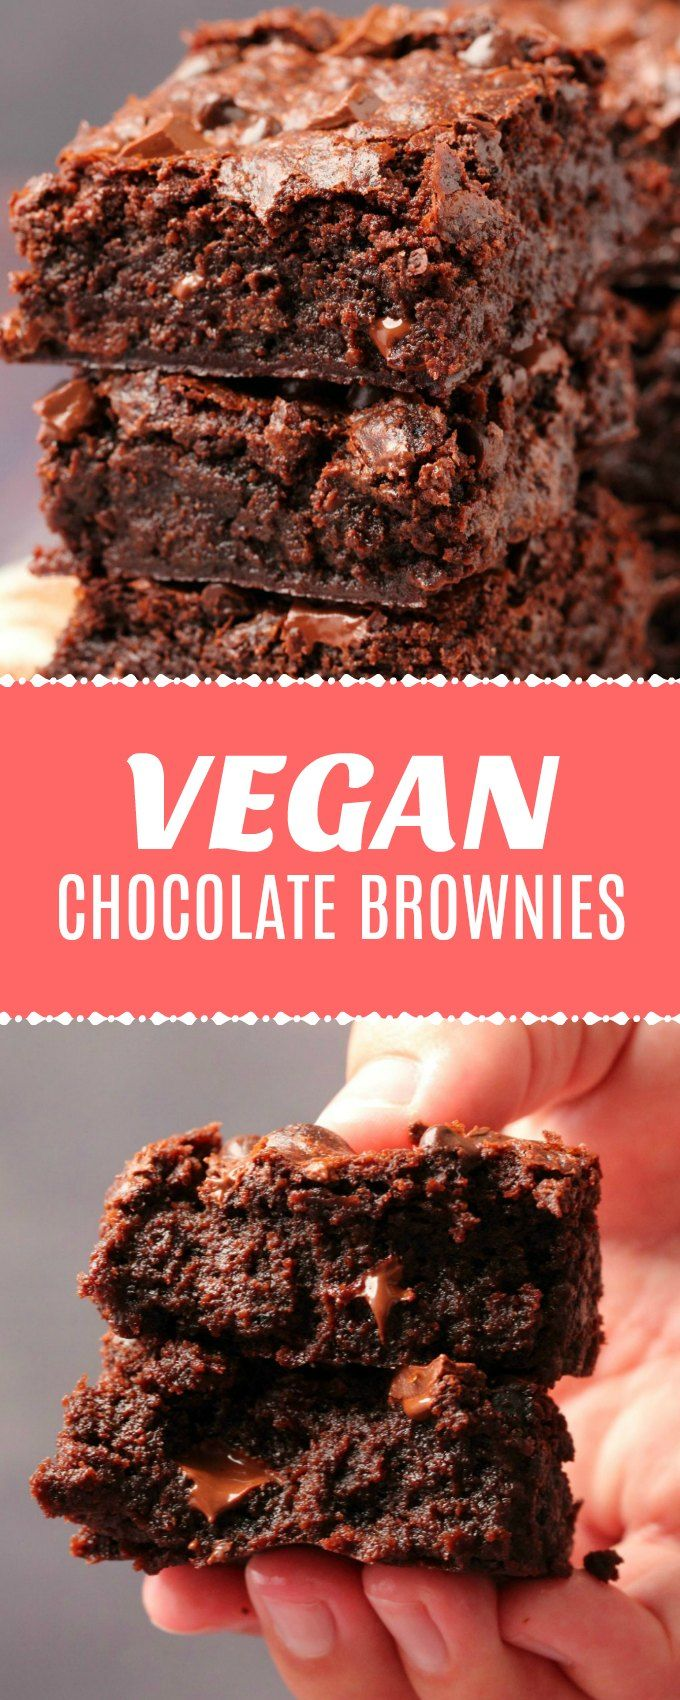 Vegan chocolate brownies that are ultra moist, mega chocolatey, dense, fudgy and…